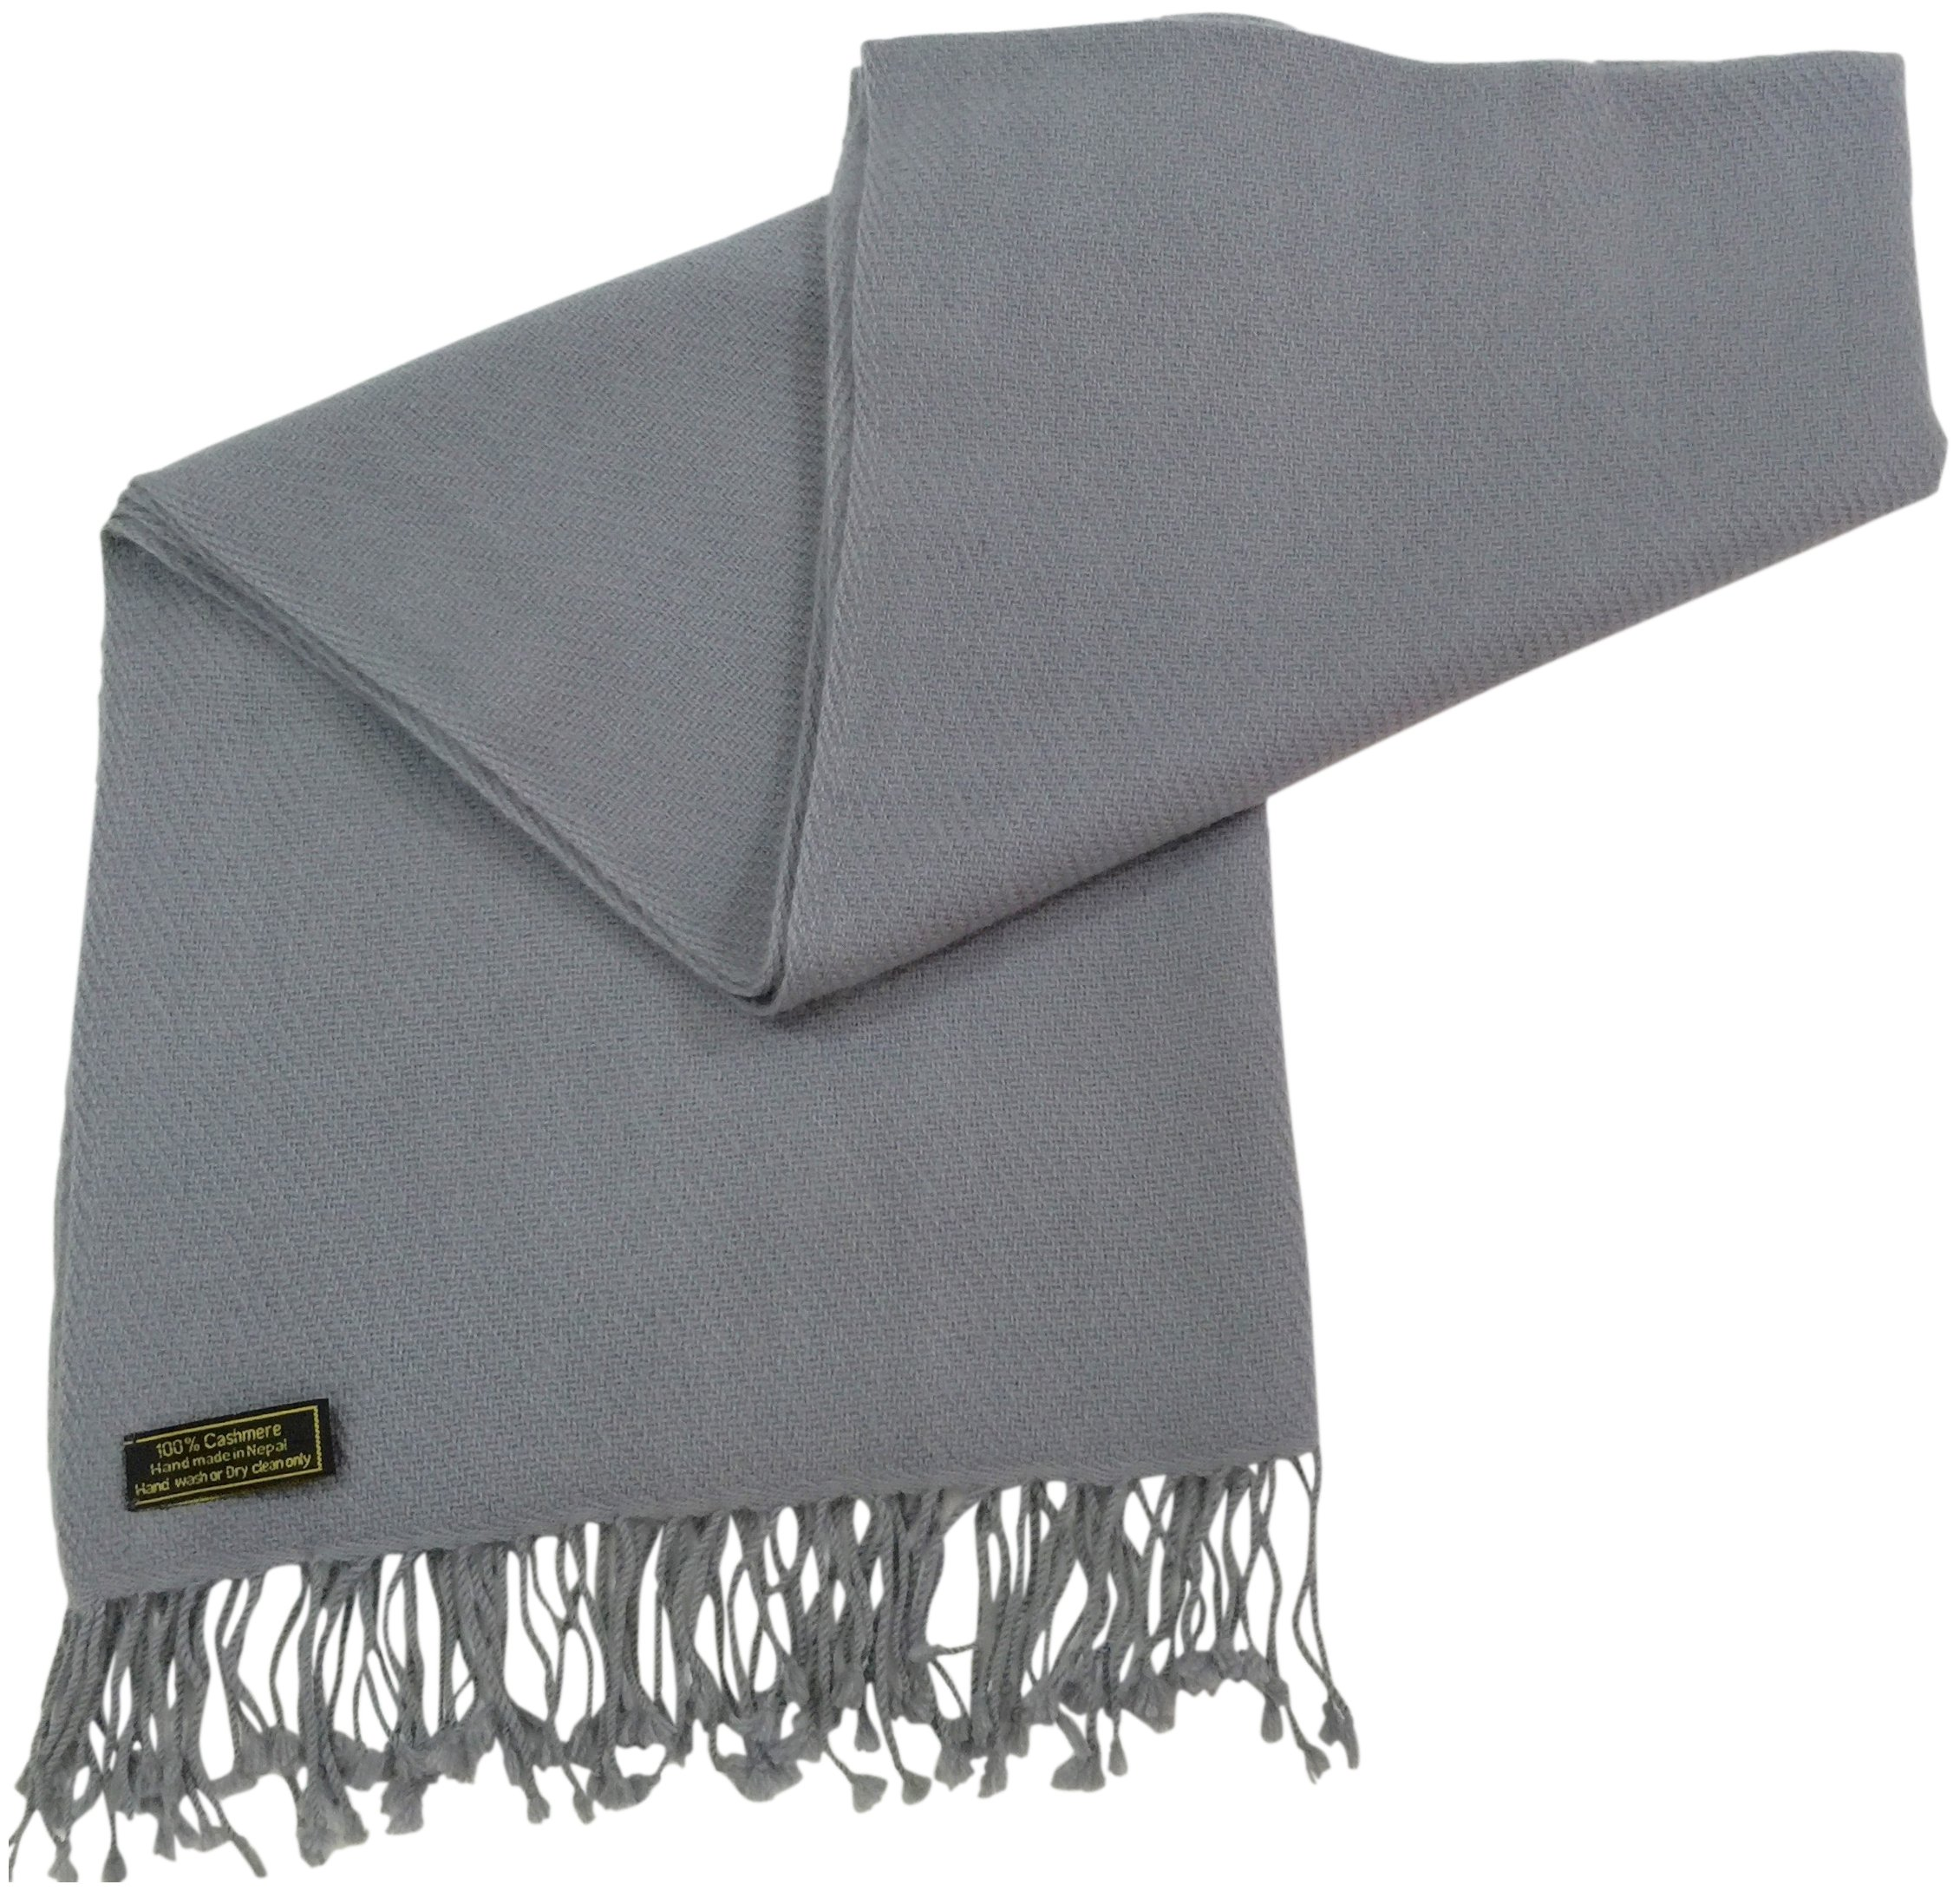 Light Grey High Grade 100% Cashmere Shawl Scarf Wrap Hand Made from Nepal NEW by CJ Apparel (Image #3)